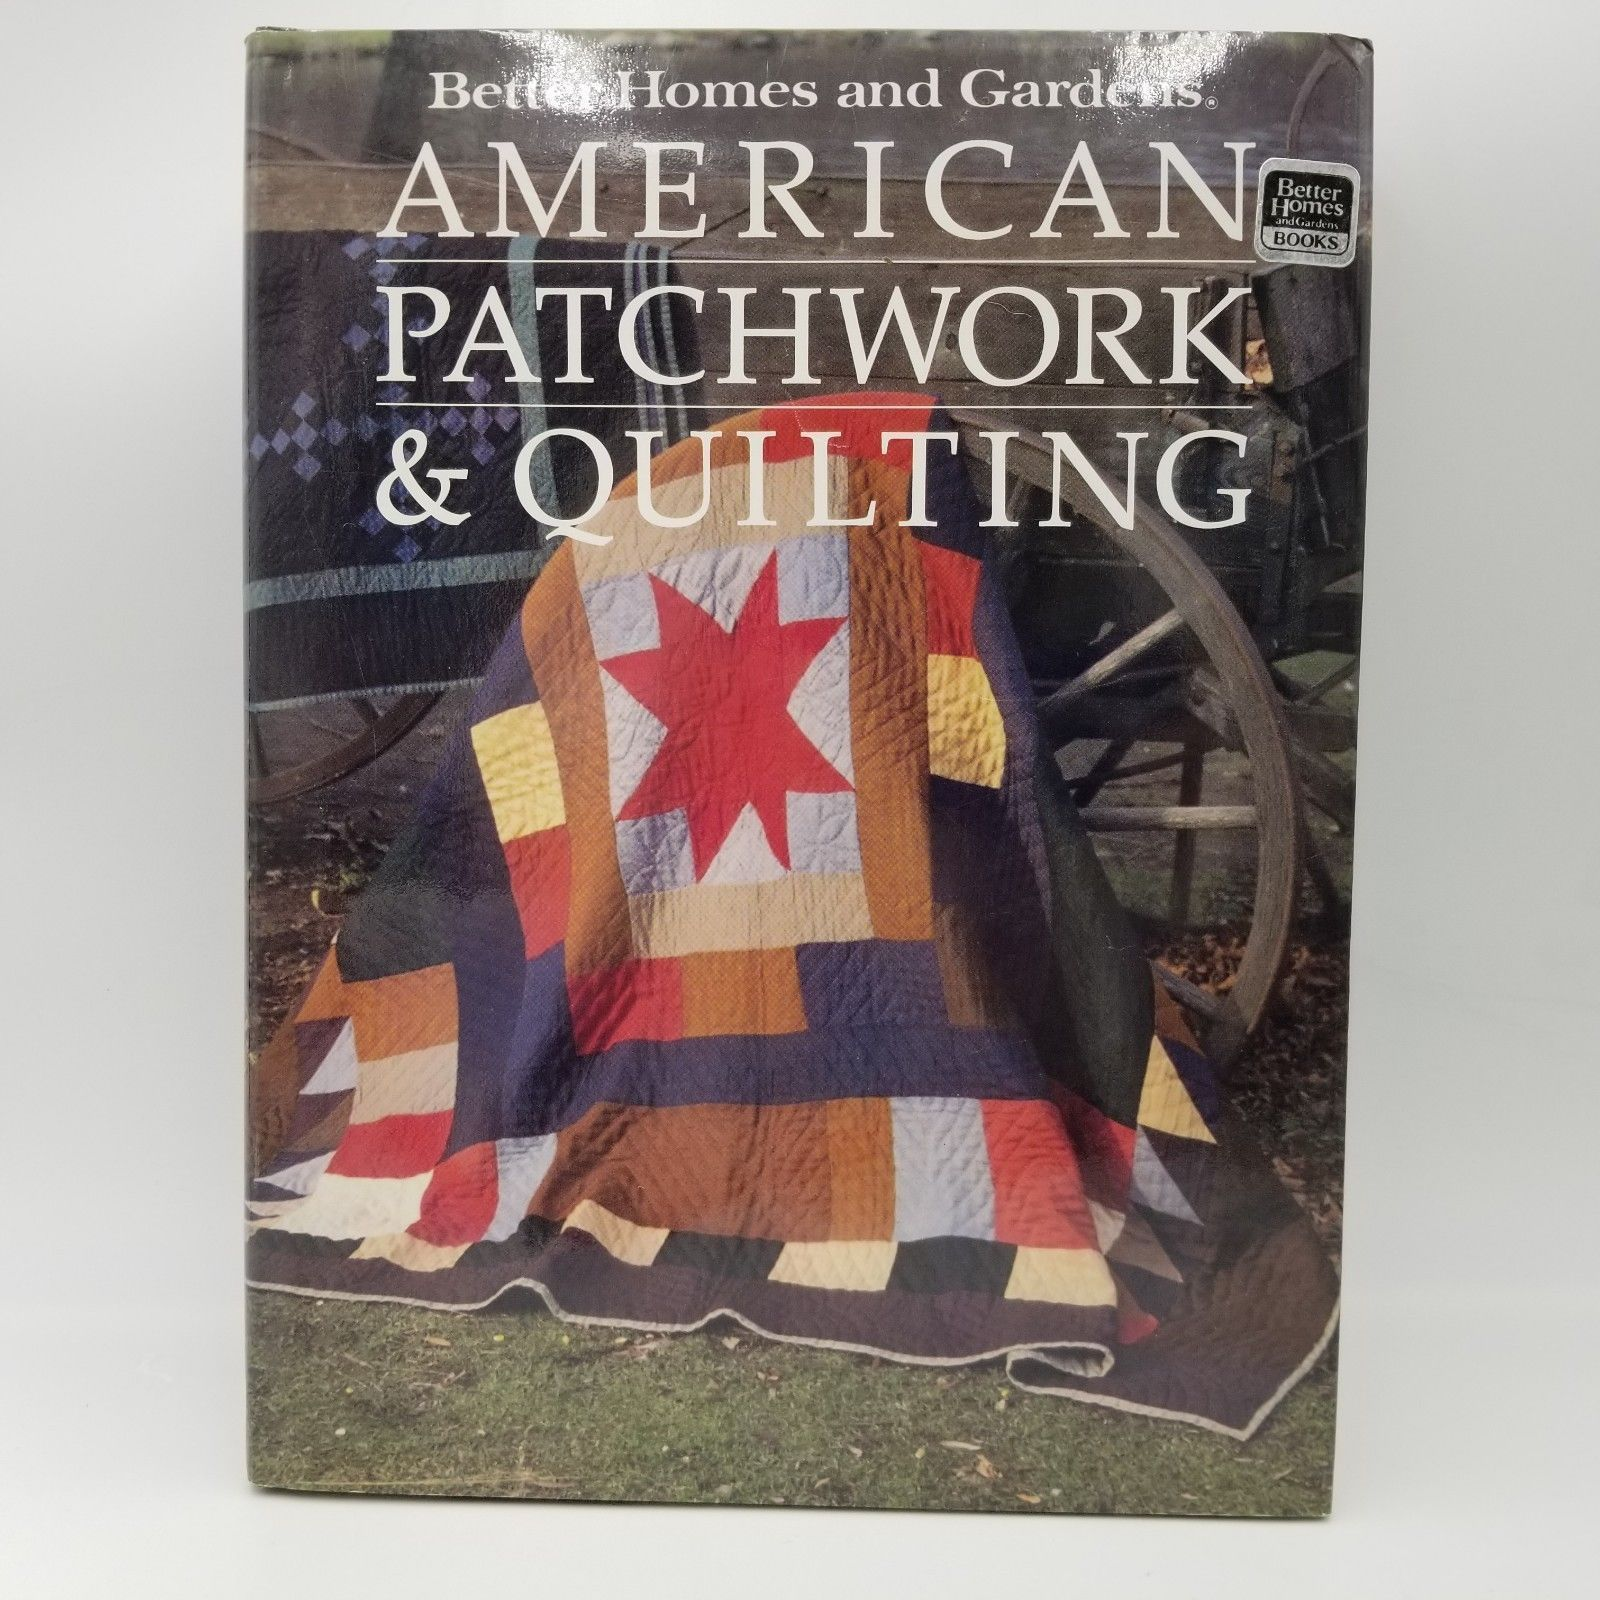 Better Homes and Gardens American Patchwork and Quilting Book First Printing